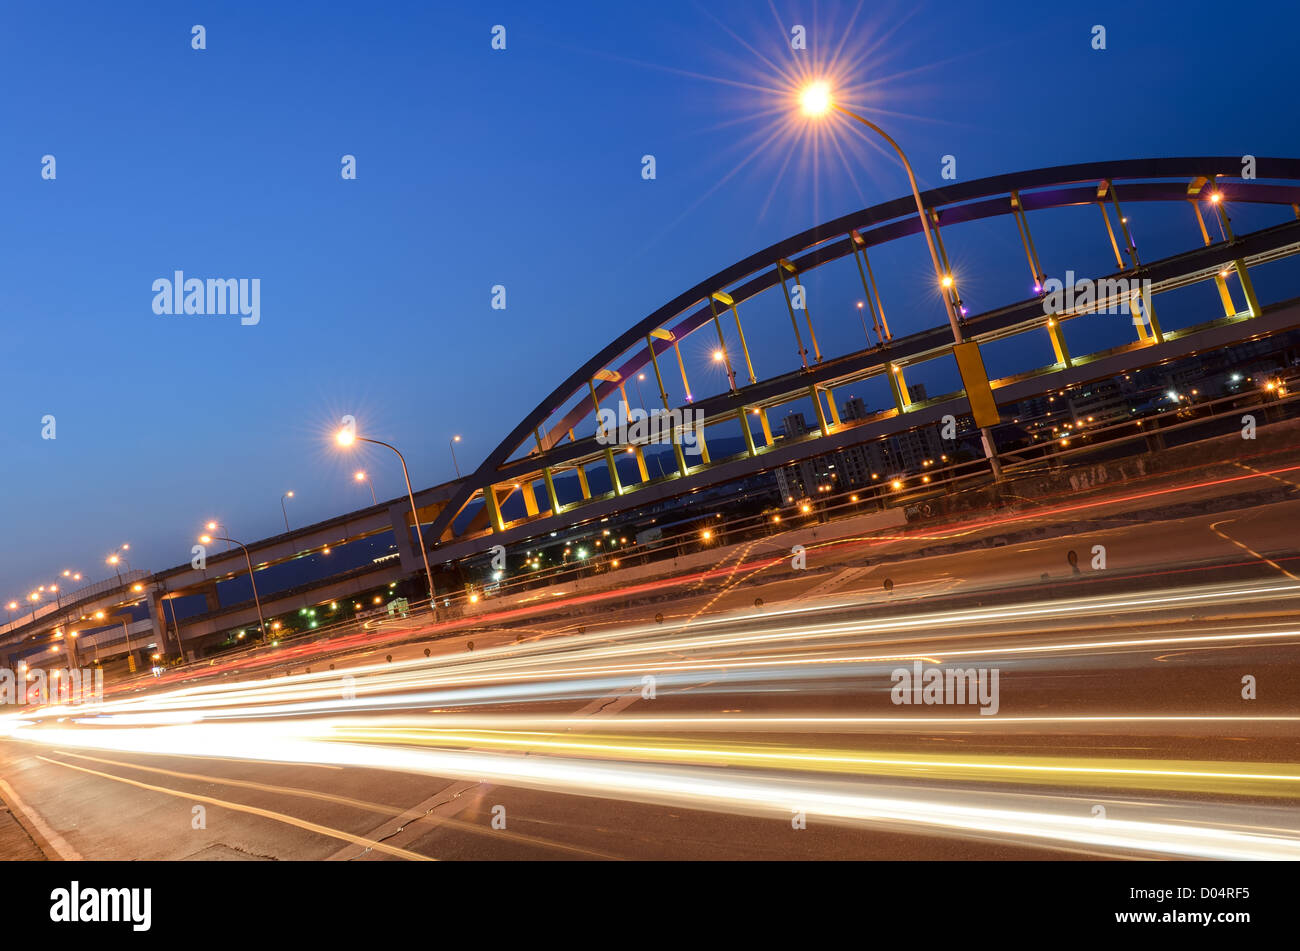 Urban transport scenery with abstract cars light in night in modem city. - Stock Image